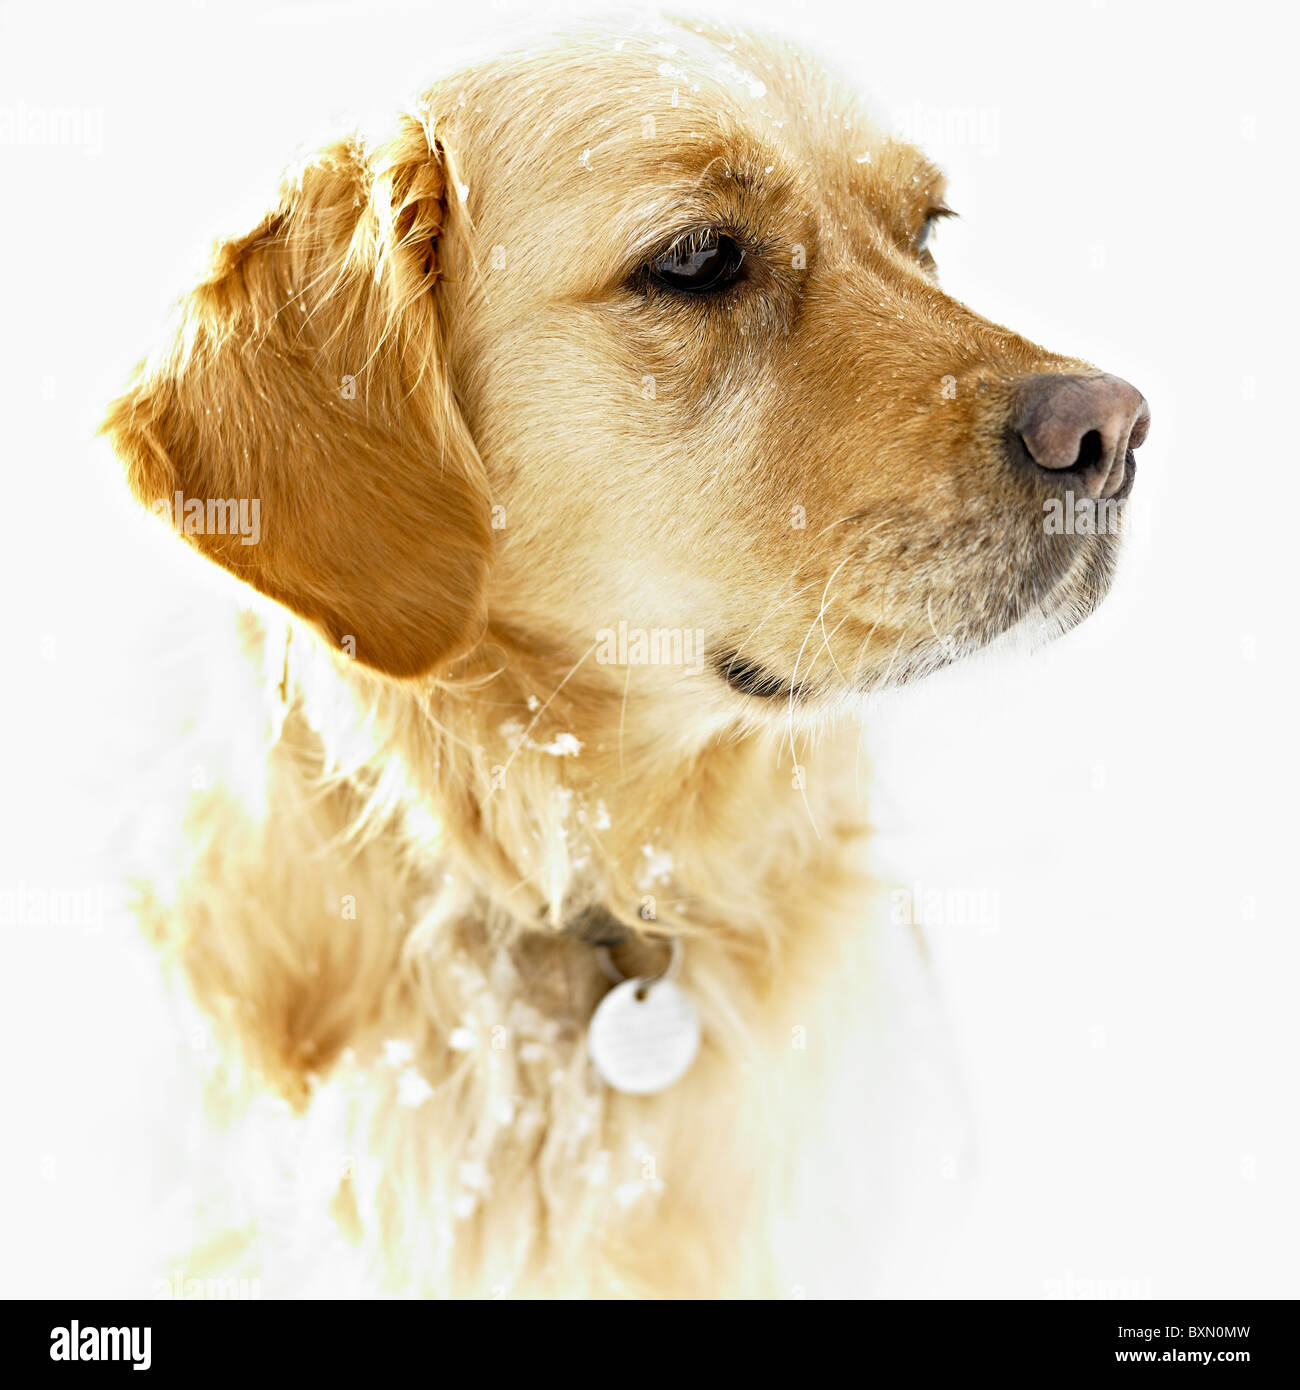 A Golden Retriever Portrait In The Snow - Stock Image